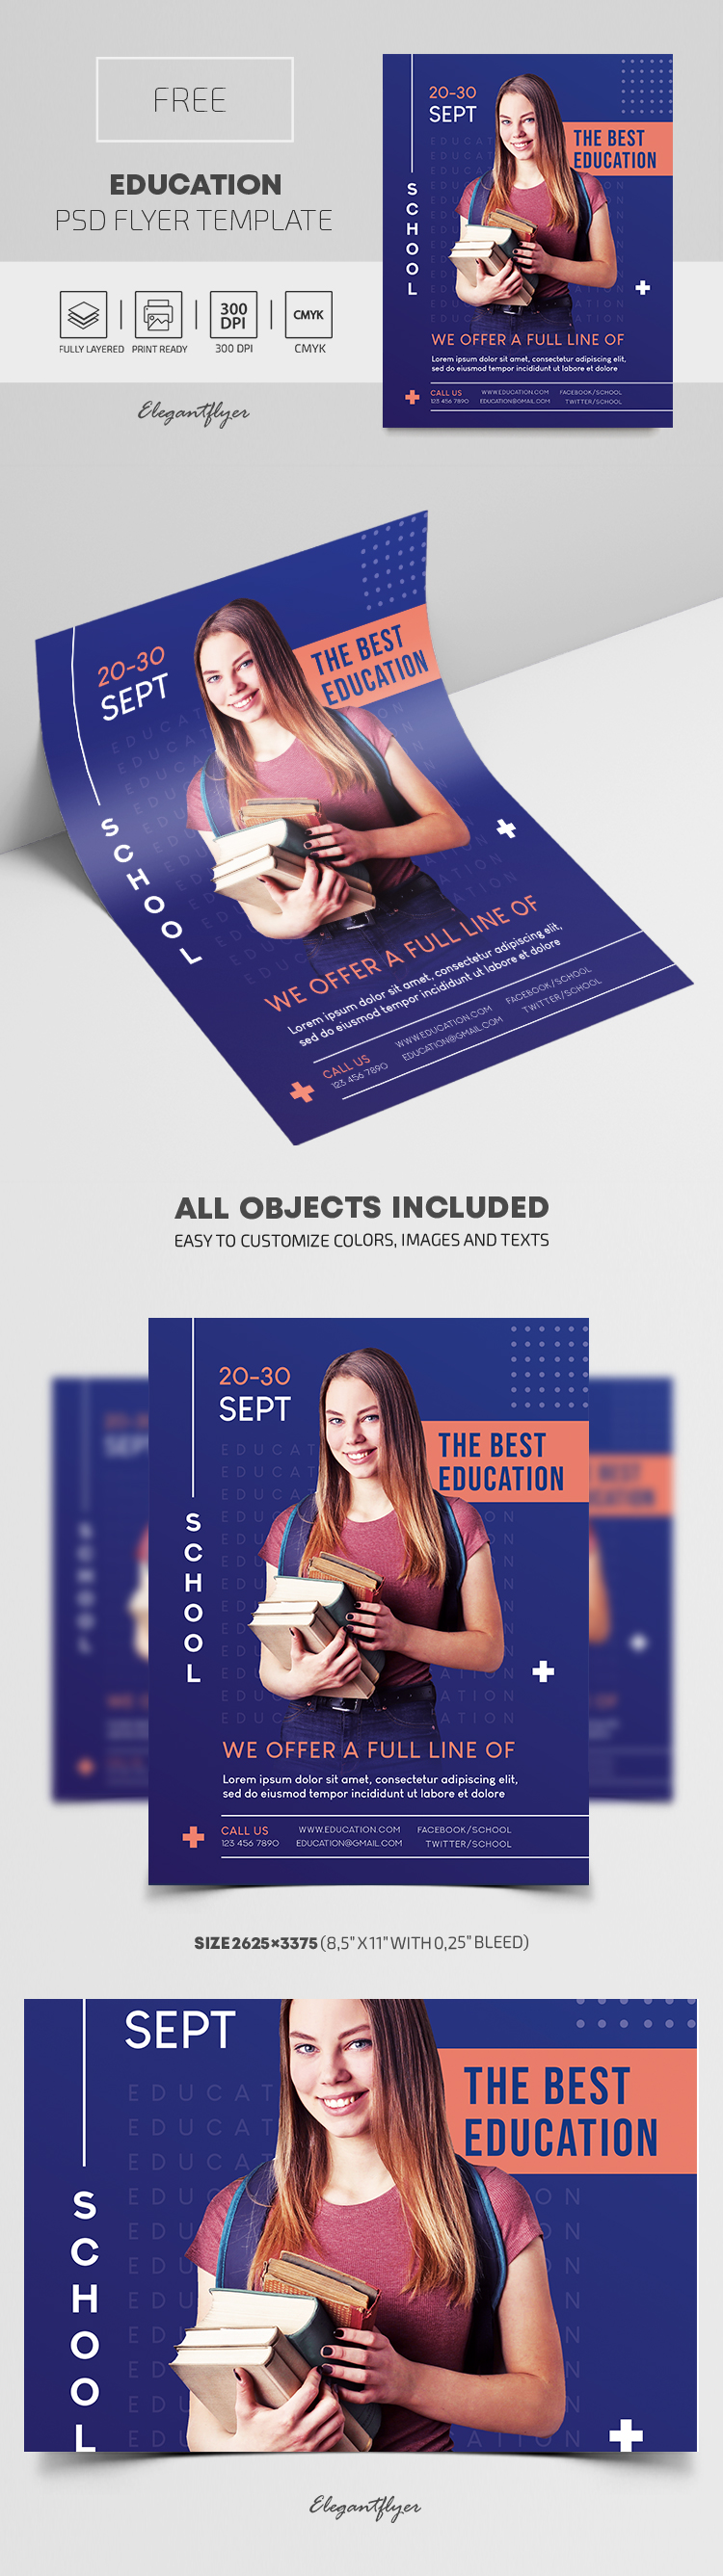 Education – Free PSD Flyer Template